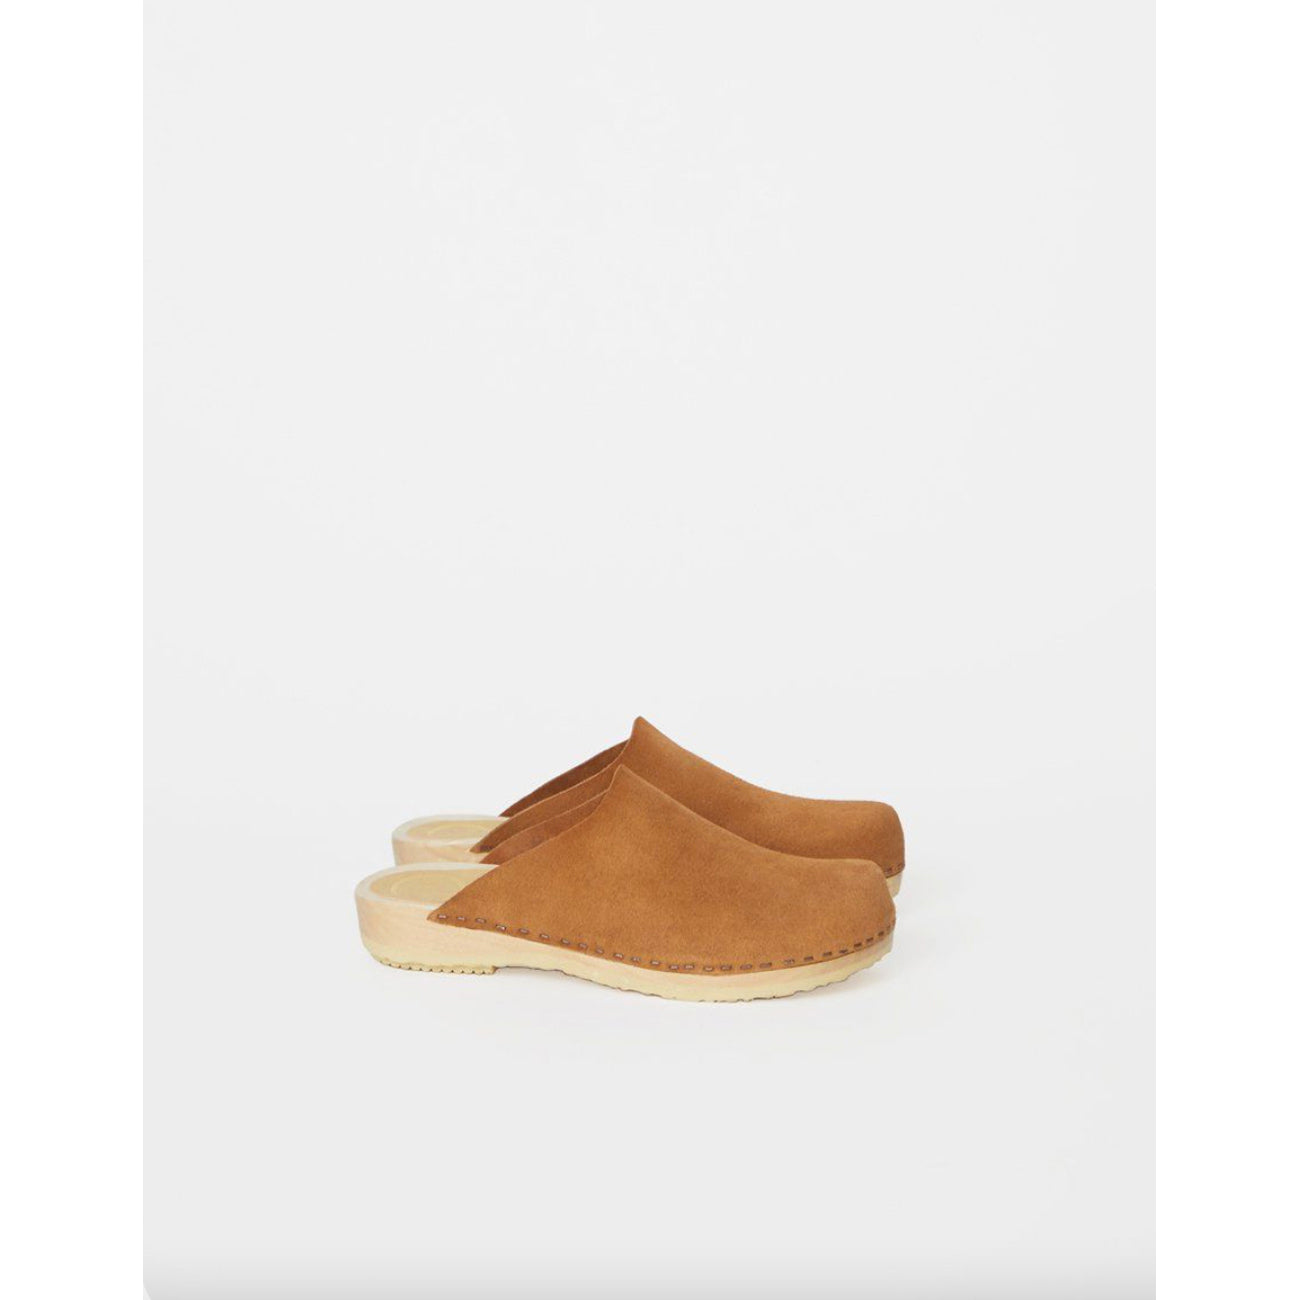 contour clog in sand suede